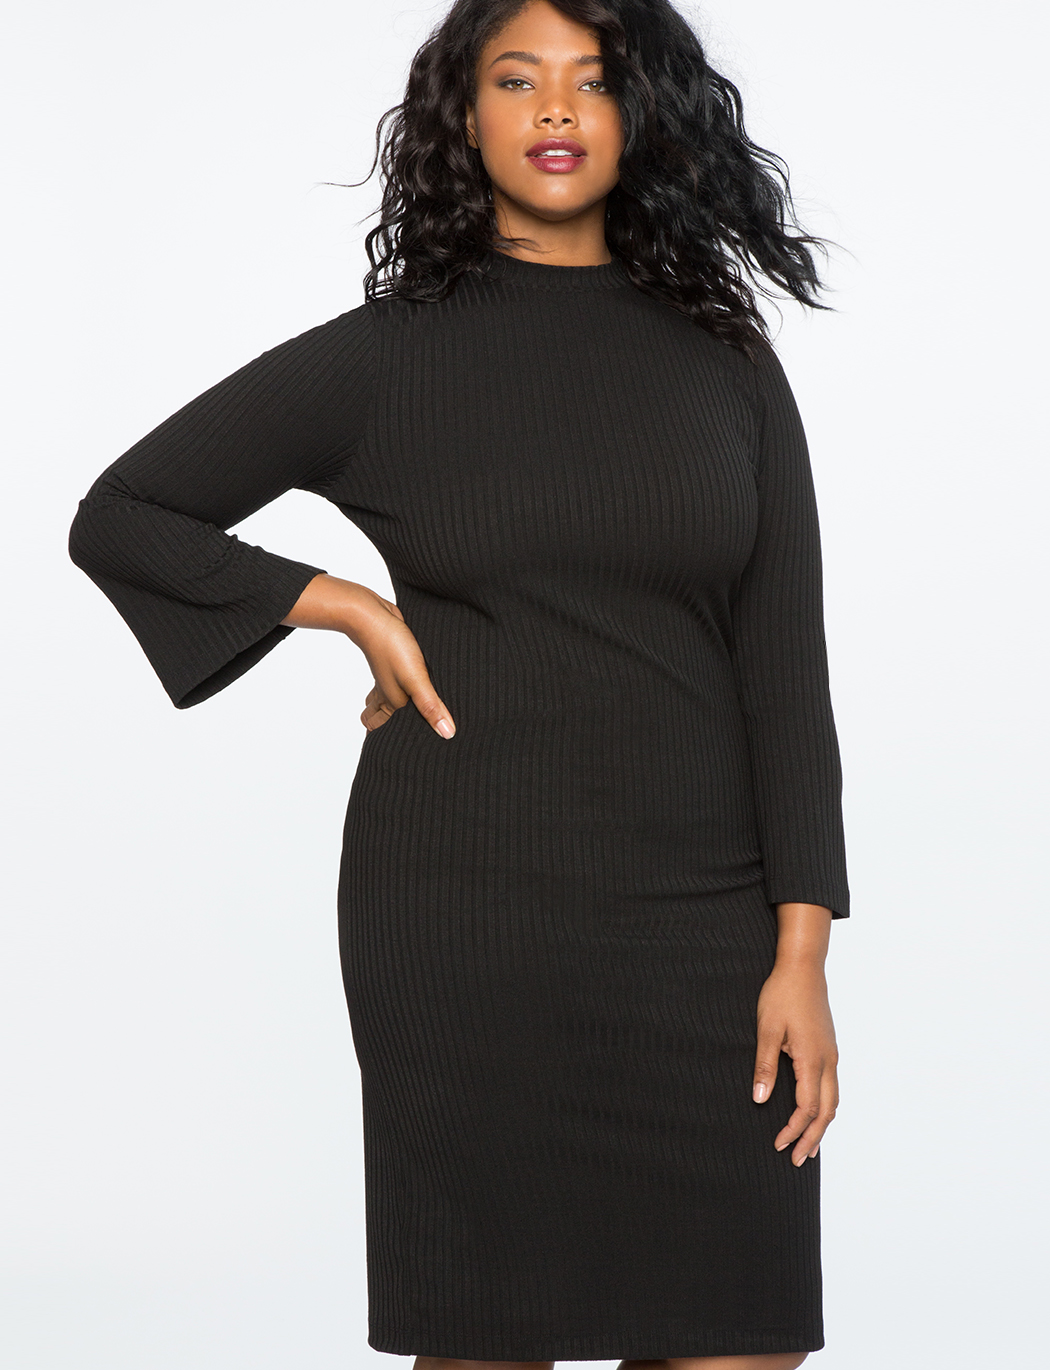 Rib Knit Sweater Dress | Women\'s Plus Size Dresses | ELOQUII